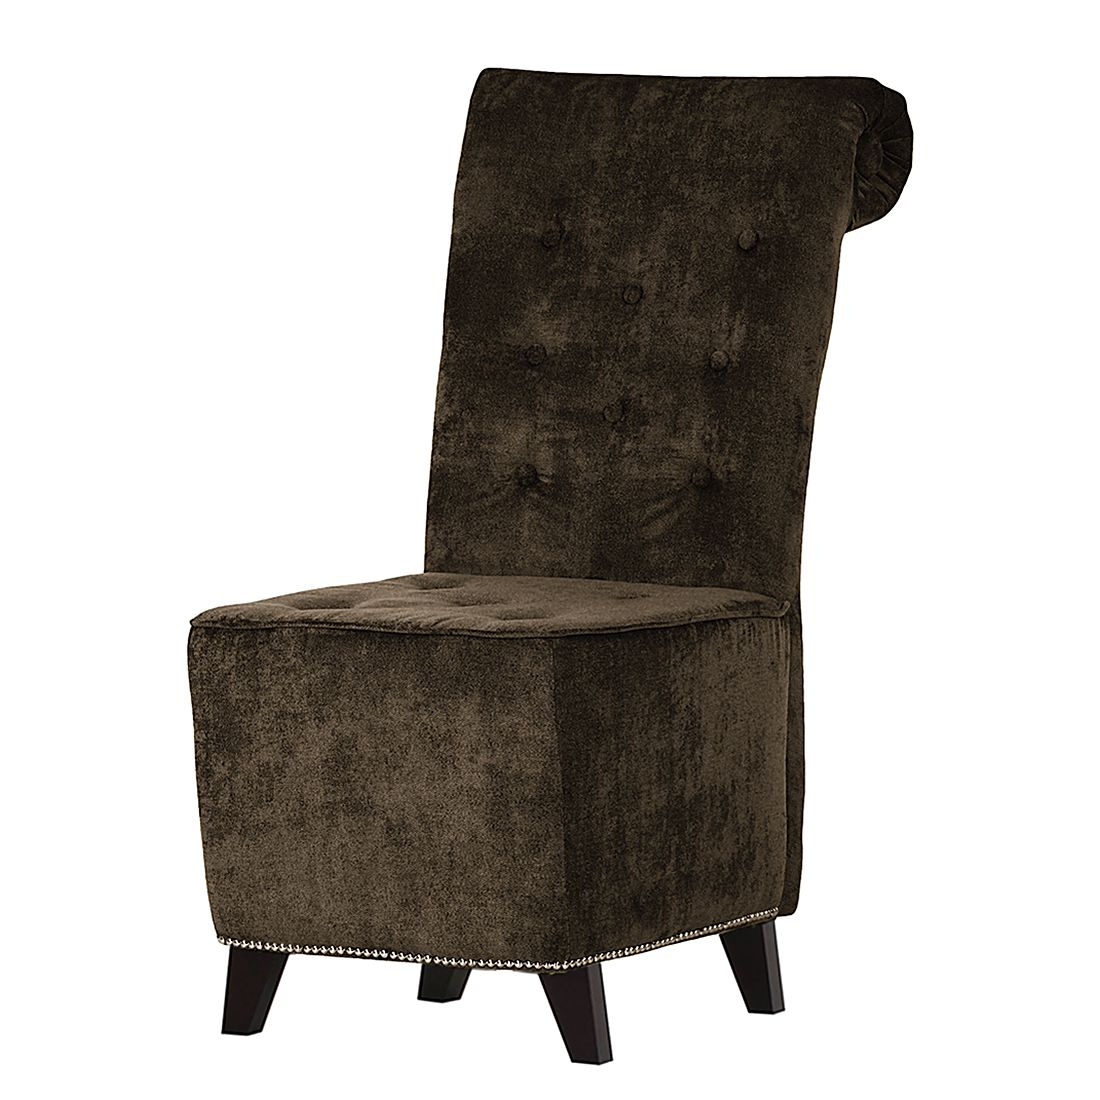 fauteuil de salon comodo ii microfibre marron jack and alice par jack and alice chez home24 fr. Black Bedroom Furniture Sets. Home Design Ideas